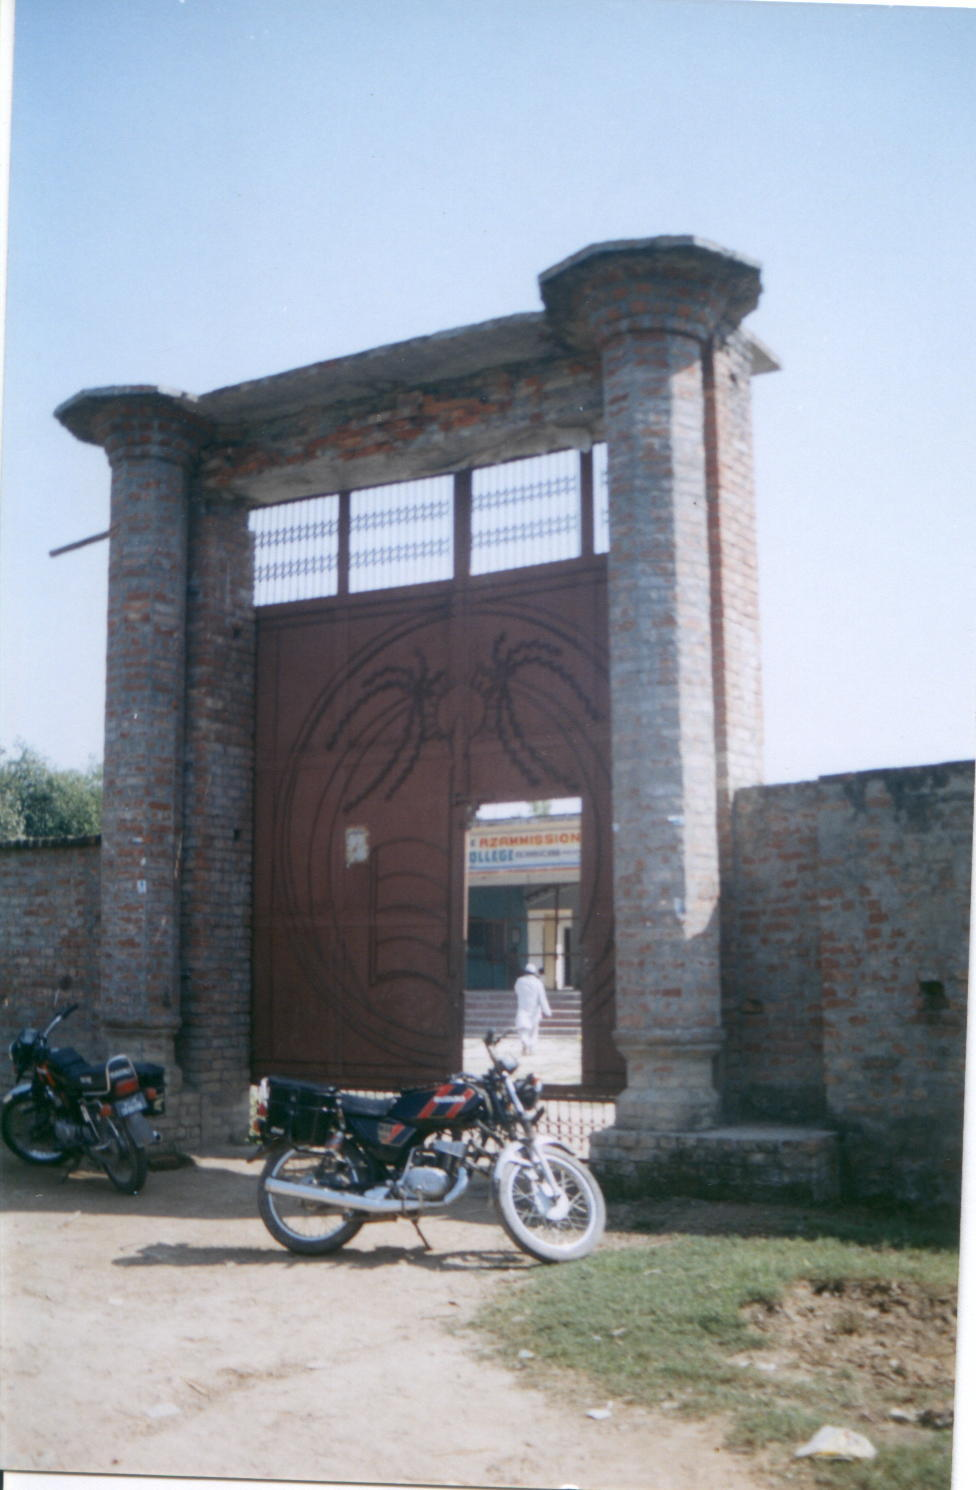 THE MAIN GATE OF COLLEGE